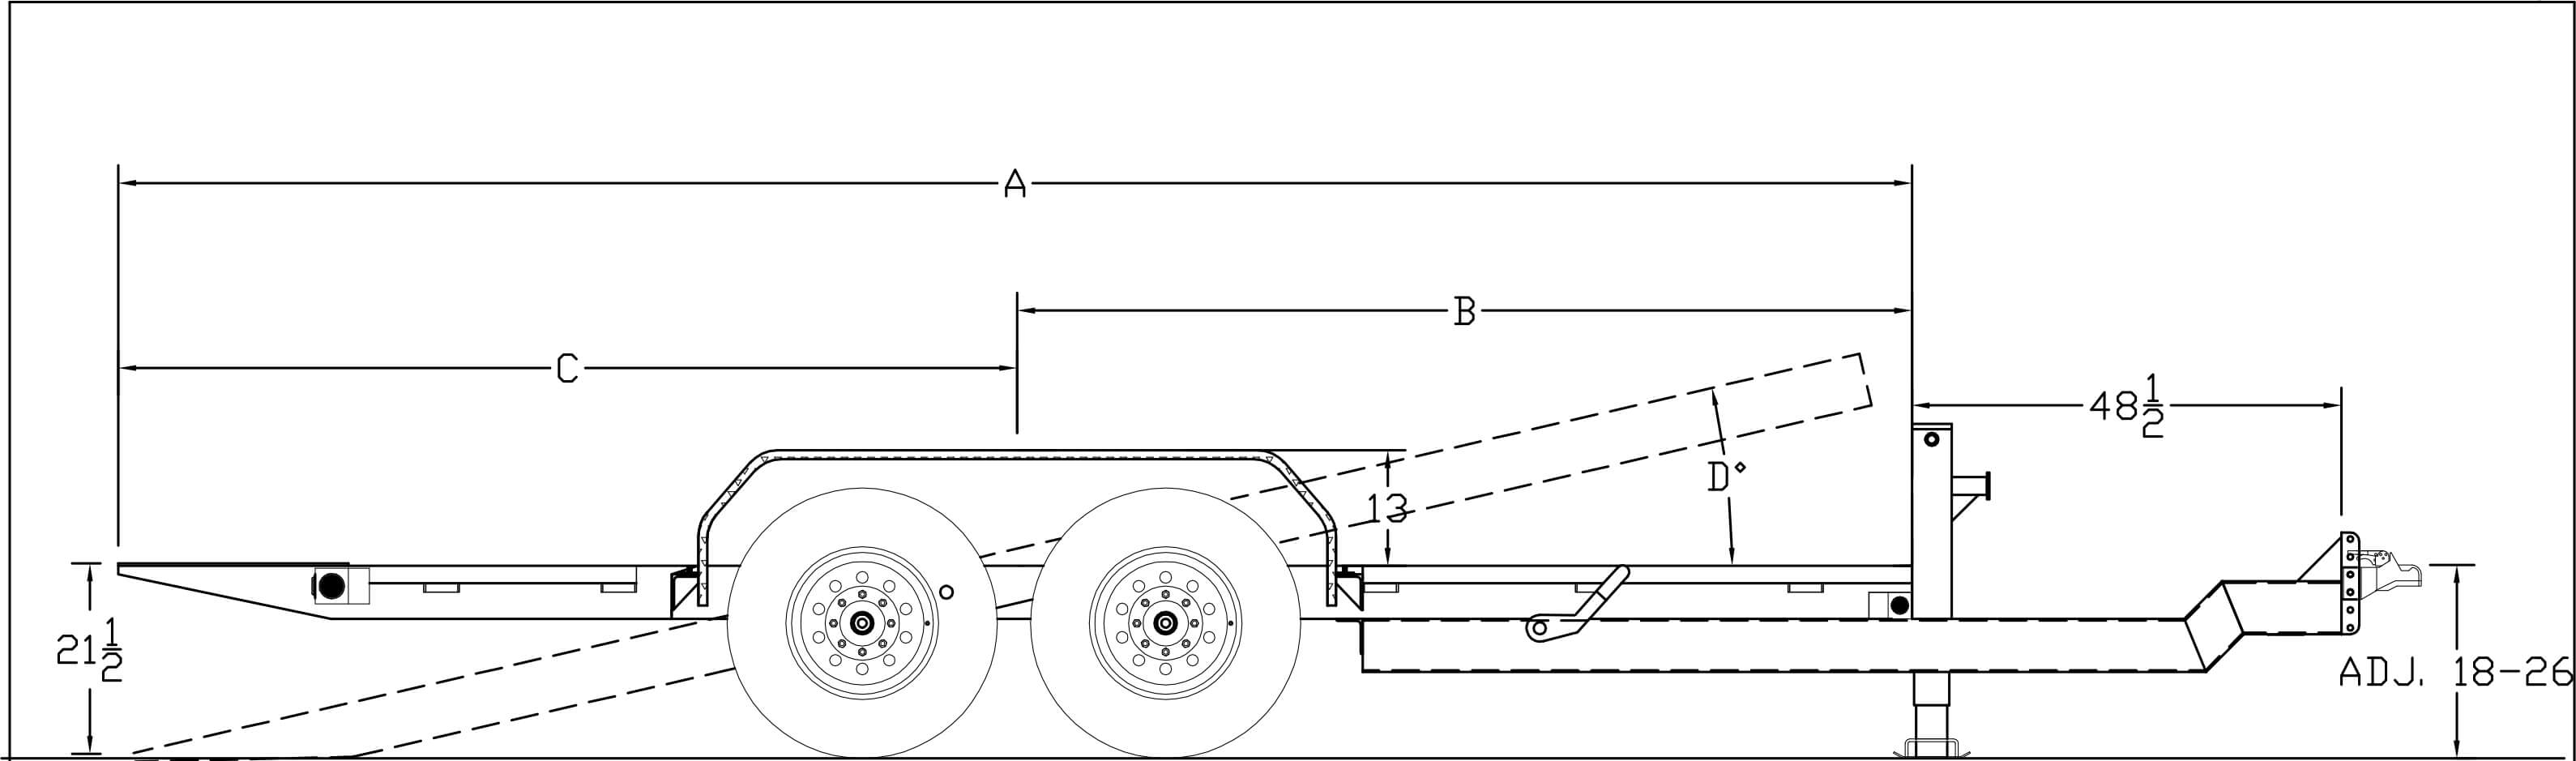 Line Drawing for **RENTAL TRAILER** 20' Full Tilt Rental Trailer - $99/Day - WEEKEND, WEEKLY & MONTHLY RATES AVAILABLE